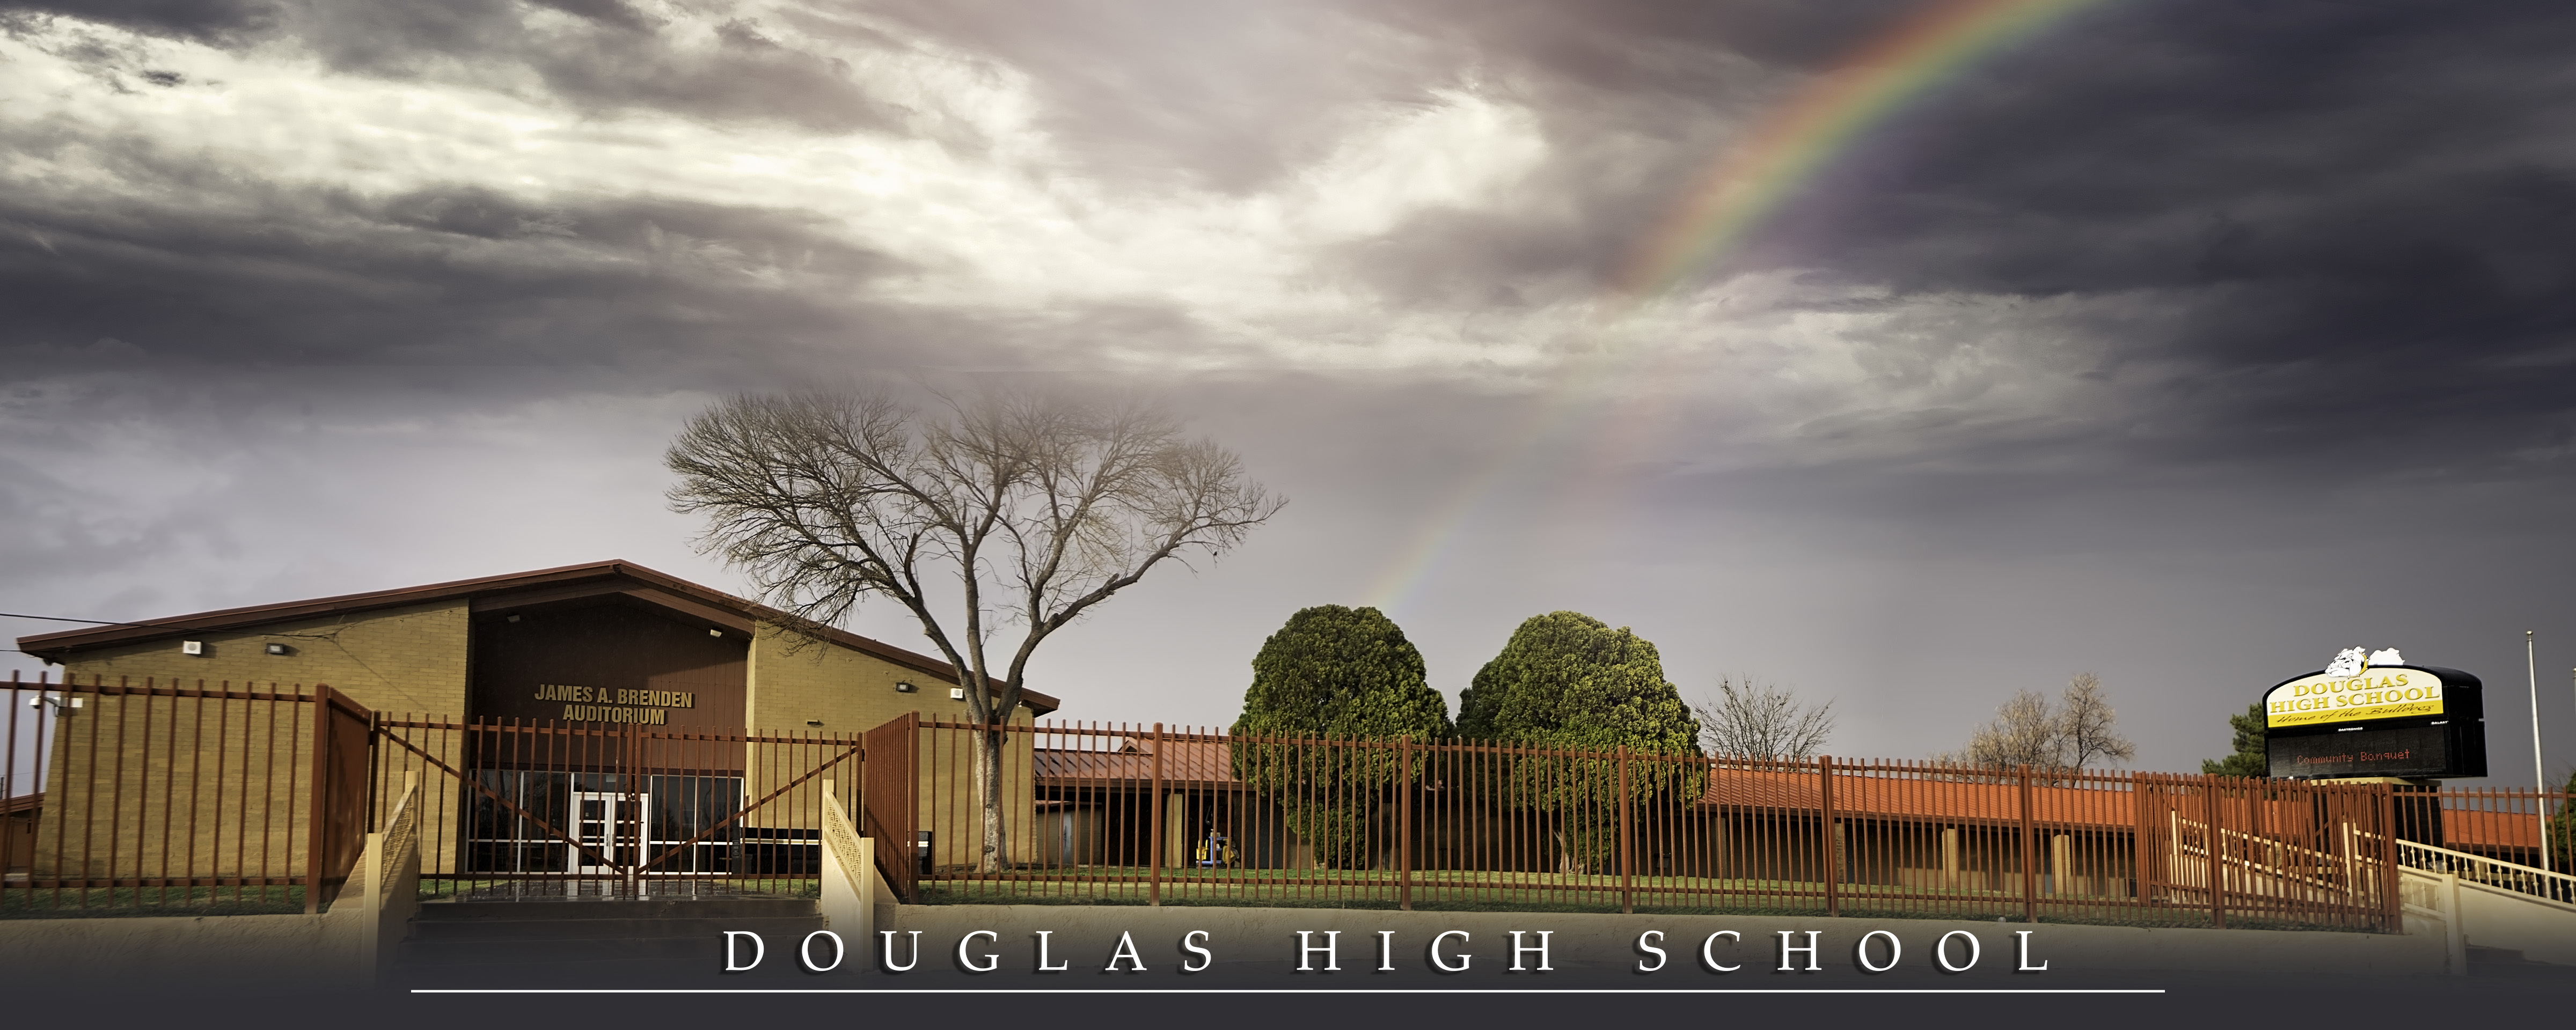 Douglas High School